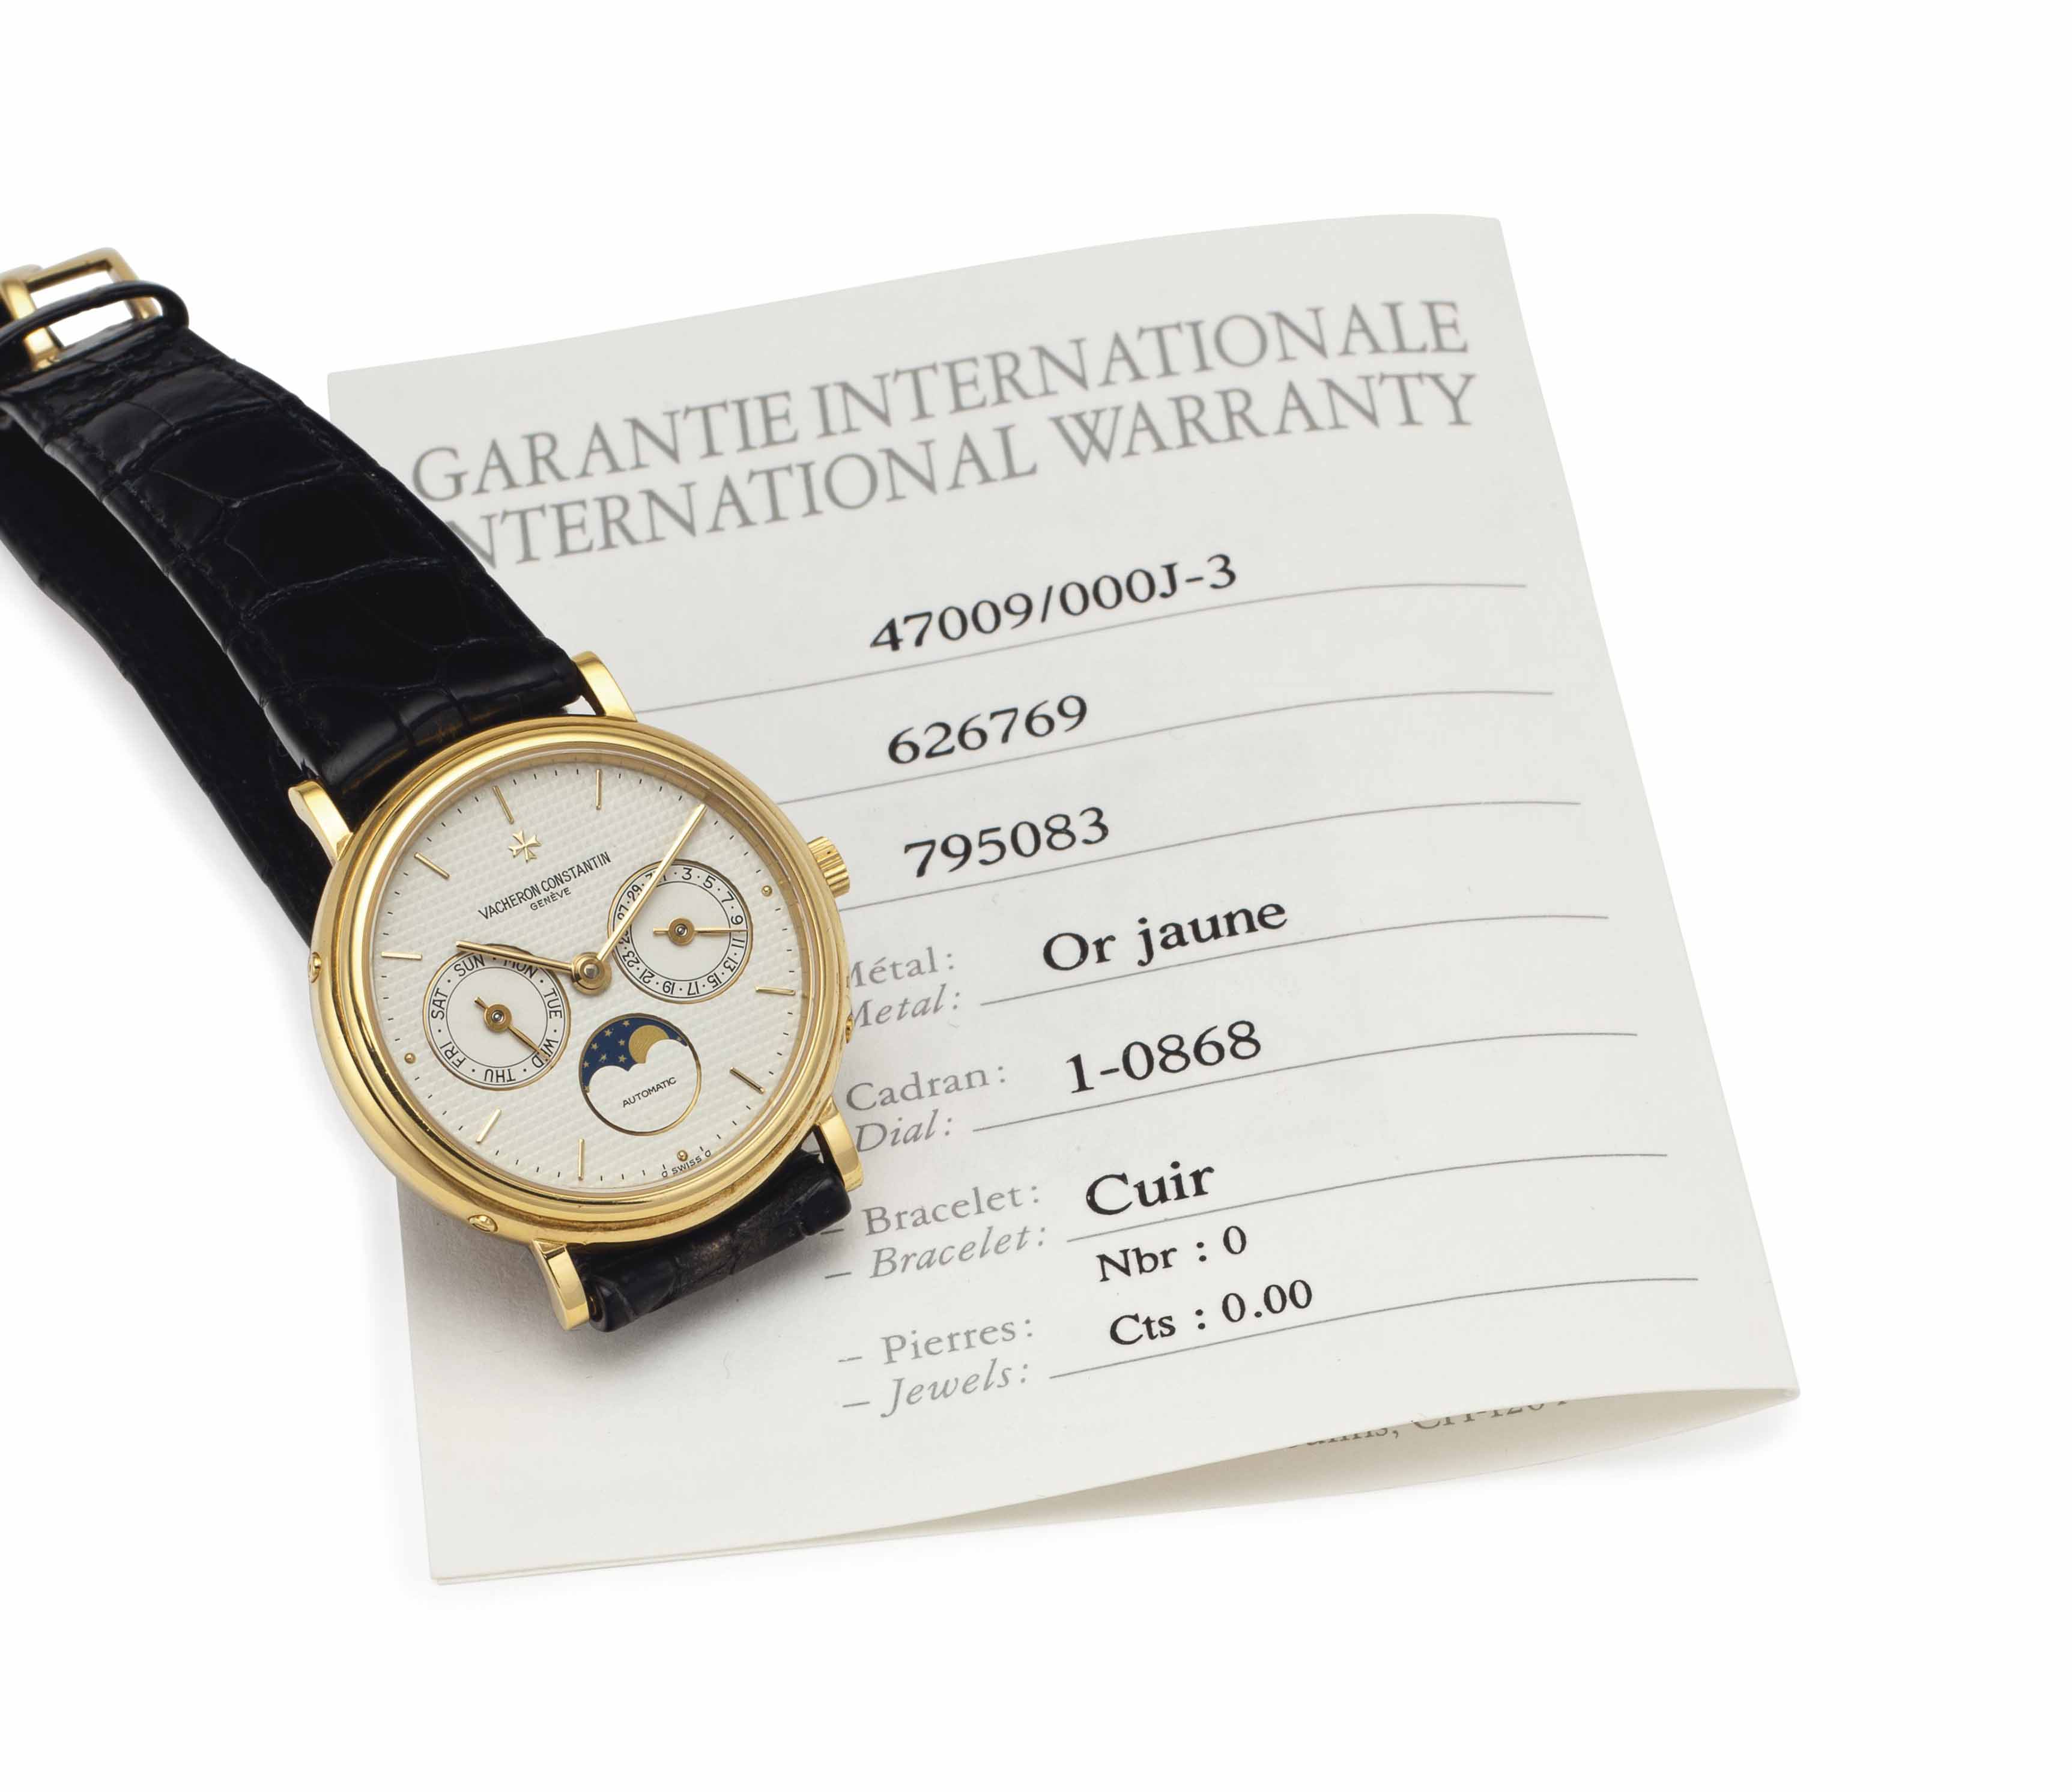 2012_NYR_02610_0302_000(vacheron_constantin_a_fine_18k_gold_automatic_wristwatch_with_day_date).jpg